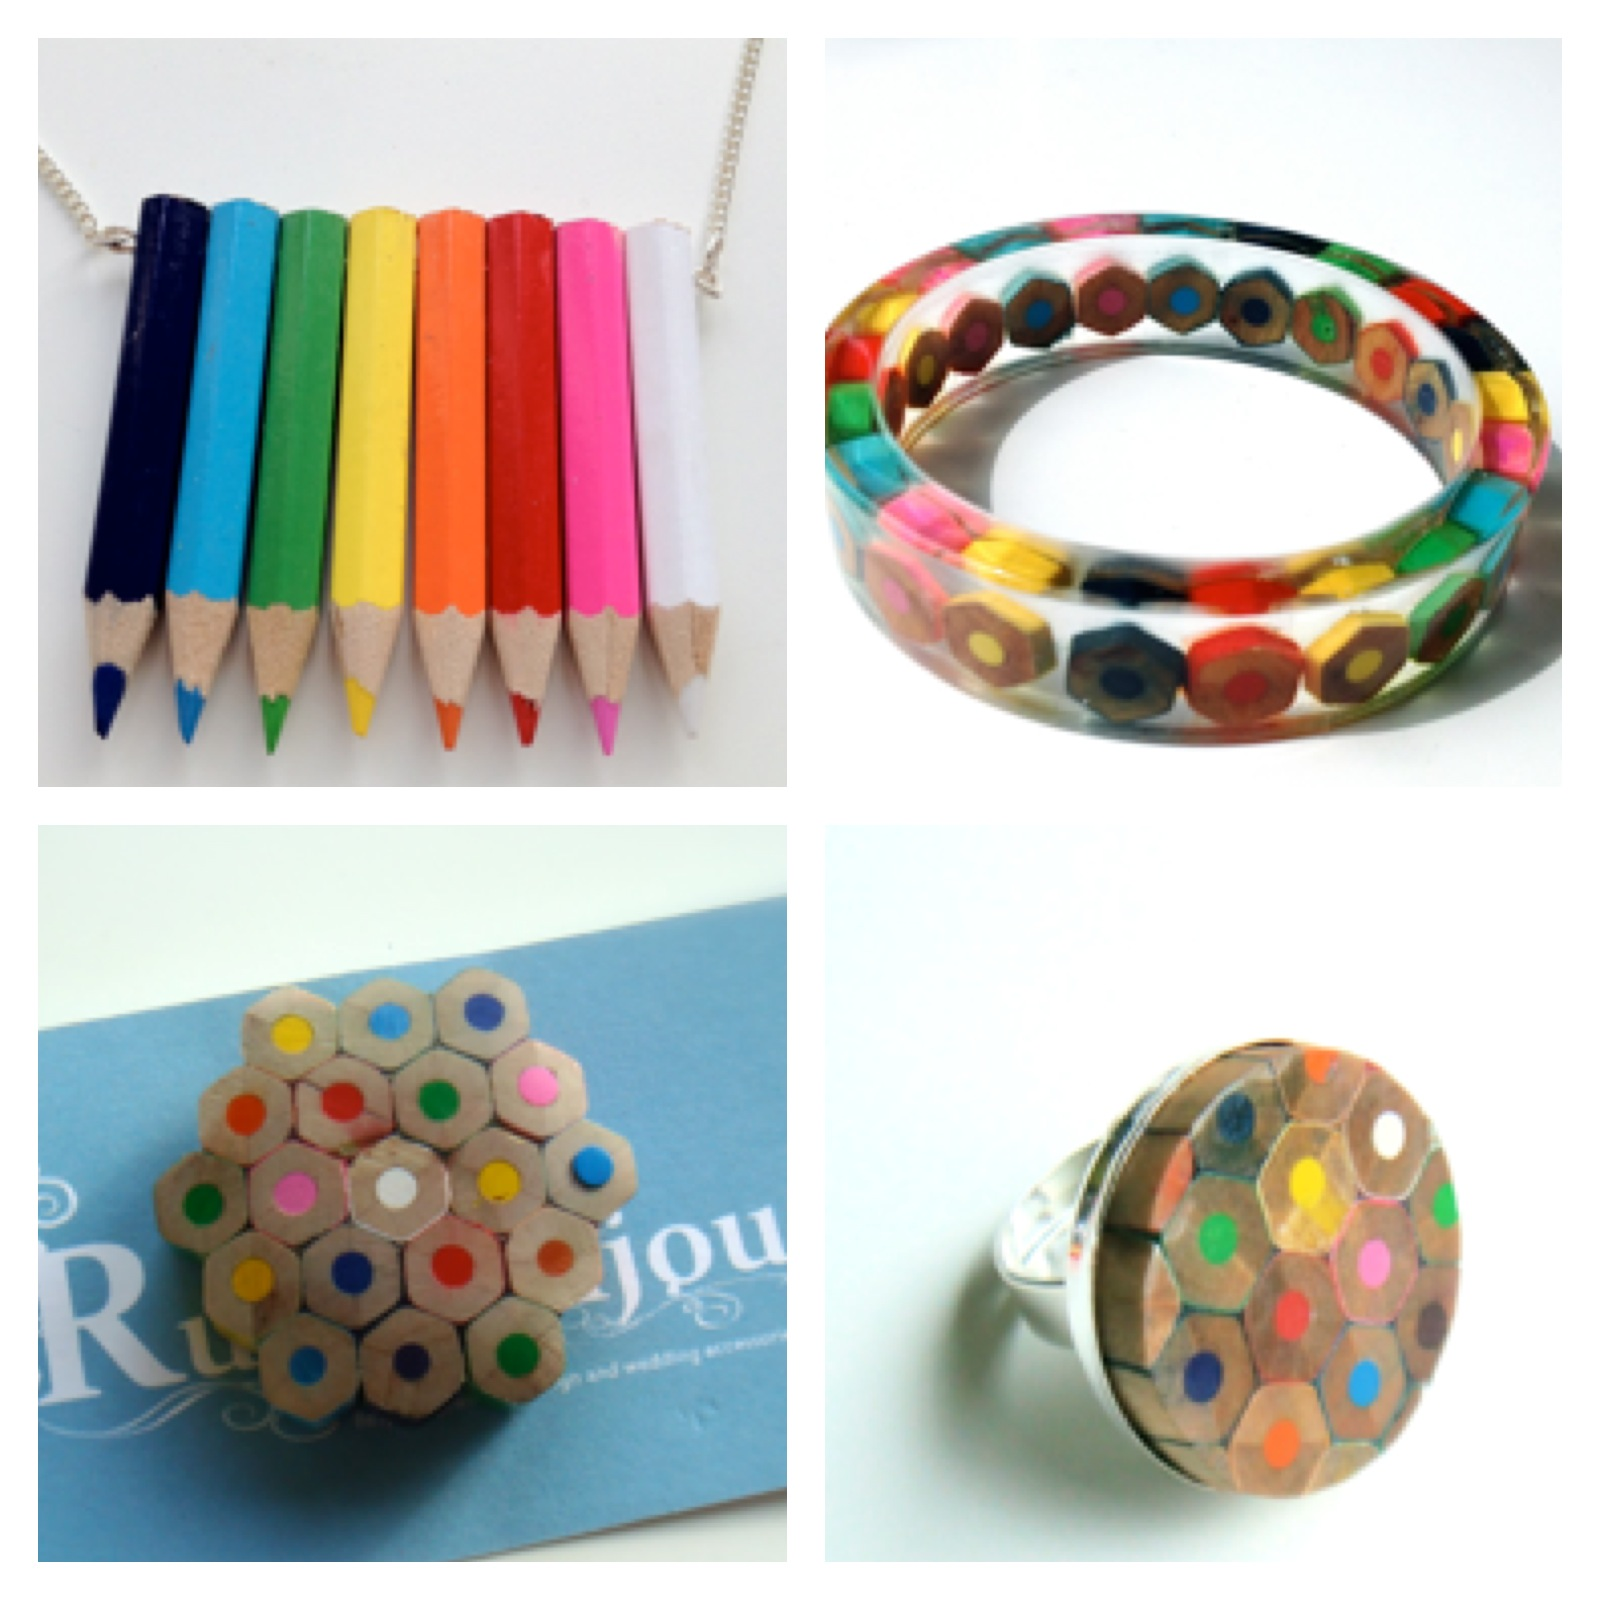 Colouring Pencil Jewellery from Ruby Bijou